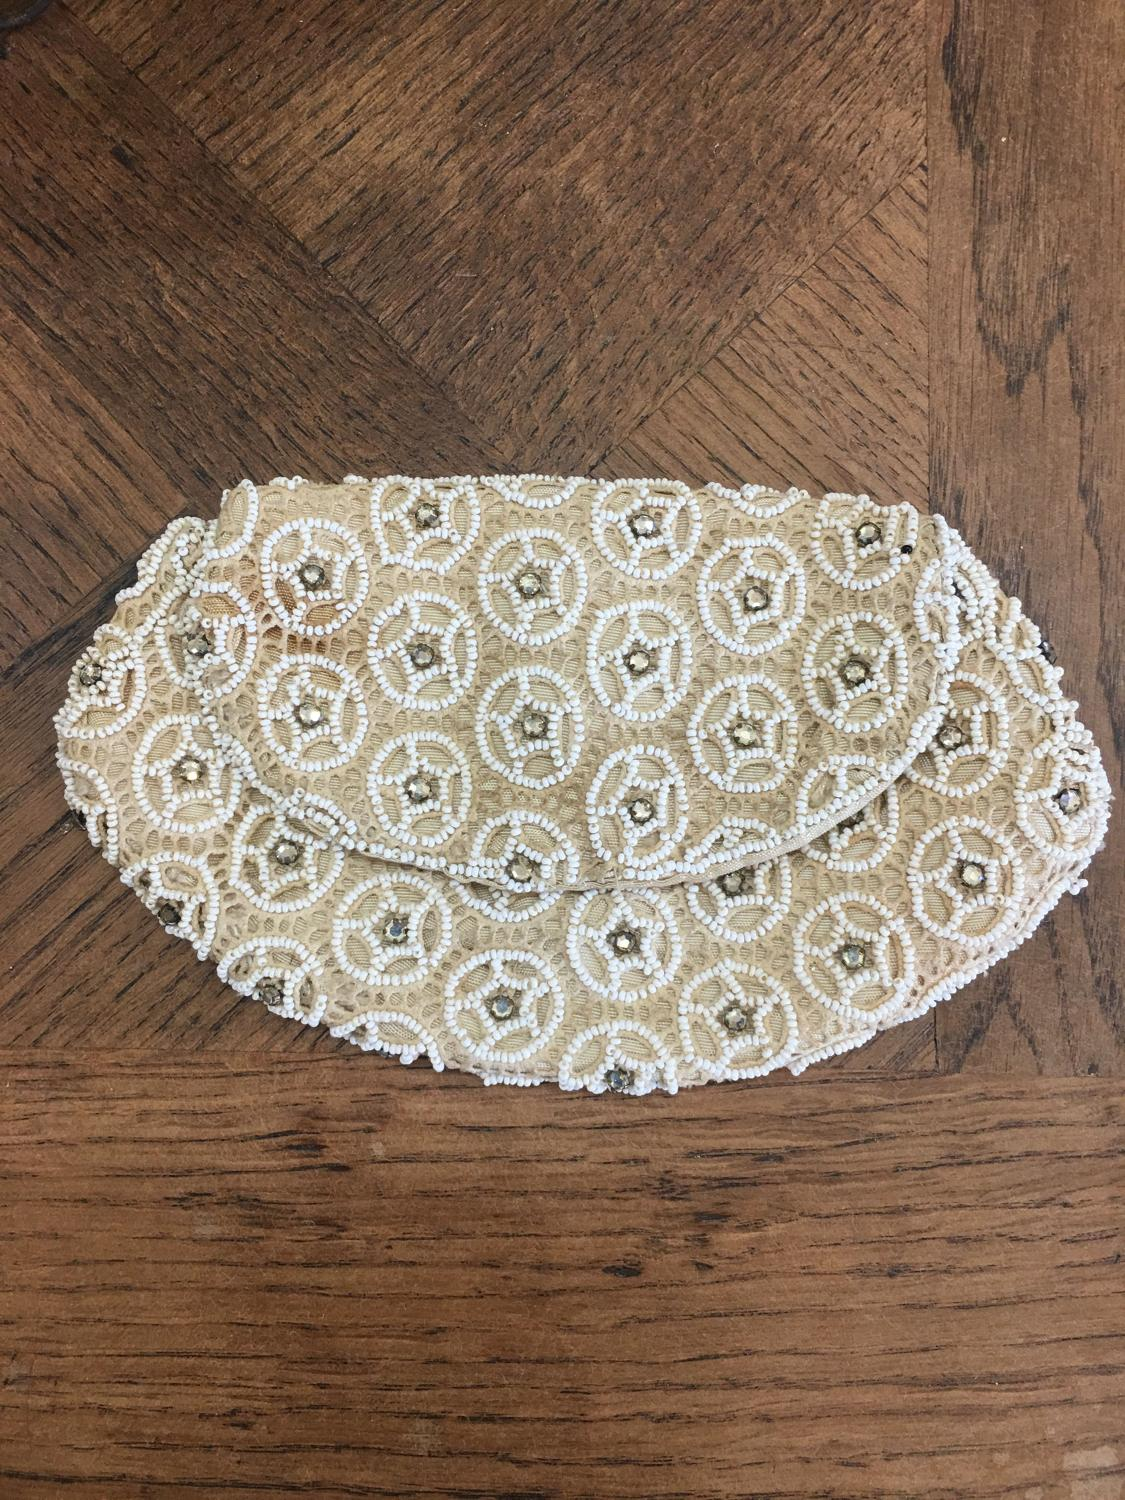 1930s cream beaded handbag